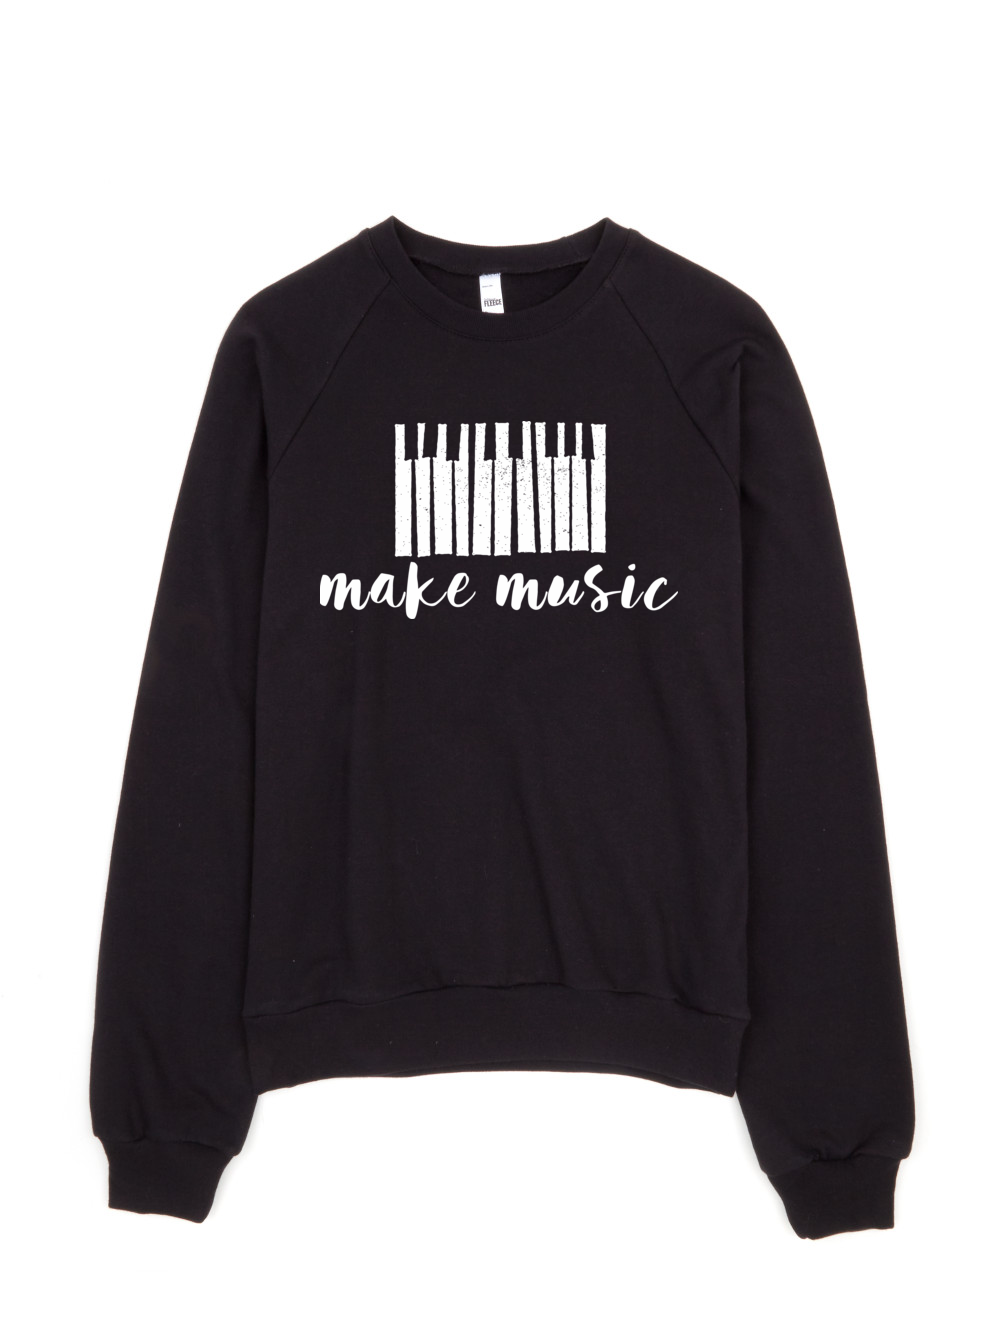 Make music sweater | women's black pullover | American apparel ...